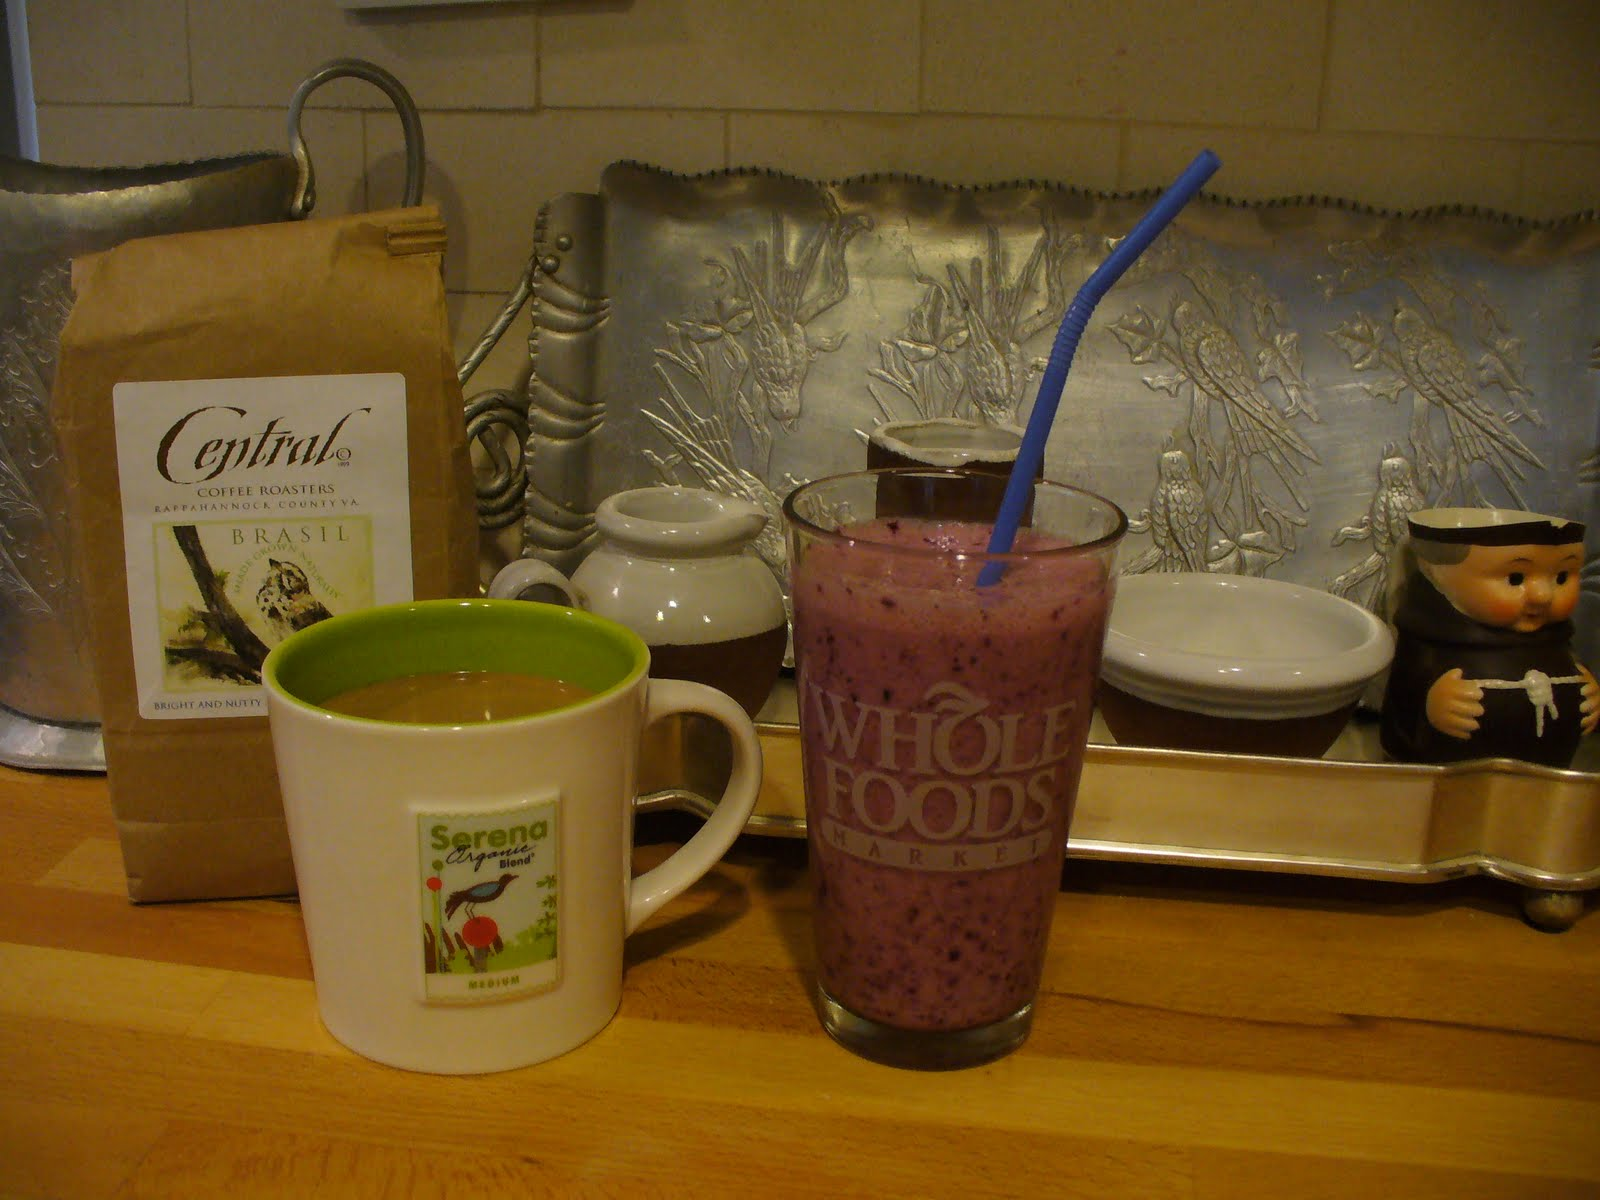 My notting hill blog - 6 30 Am Wake Up 7 00 Am Finally Get Out Of Bed Say Hi To My Husband And Kids And Get Ready For Work Grab A Liquid Breakfast To Go